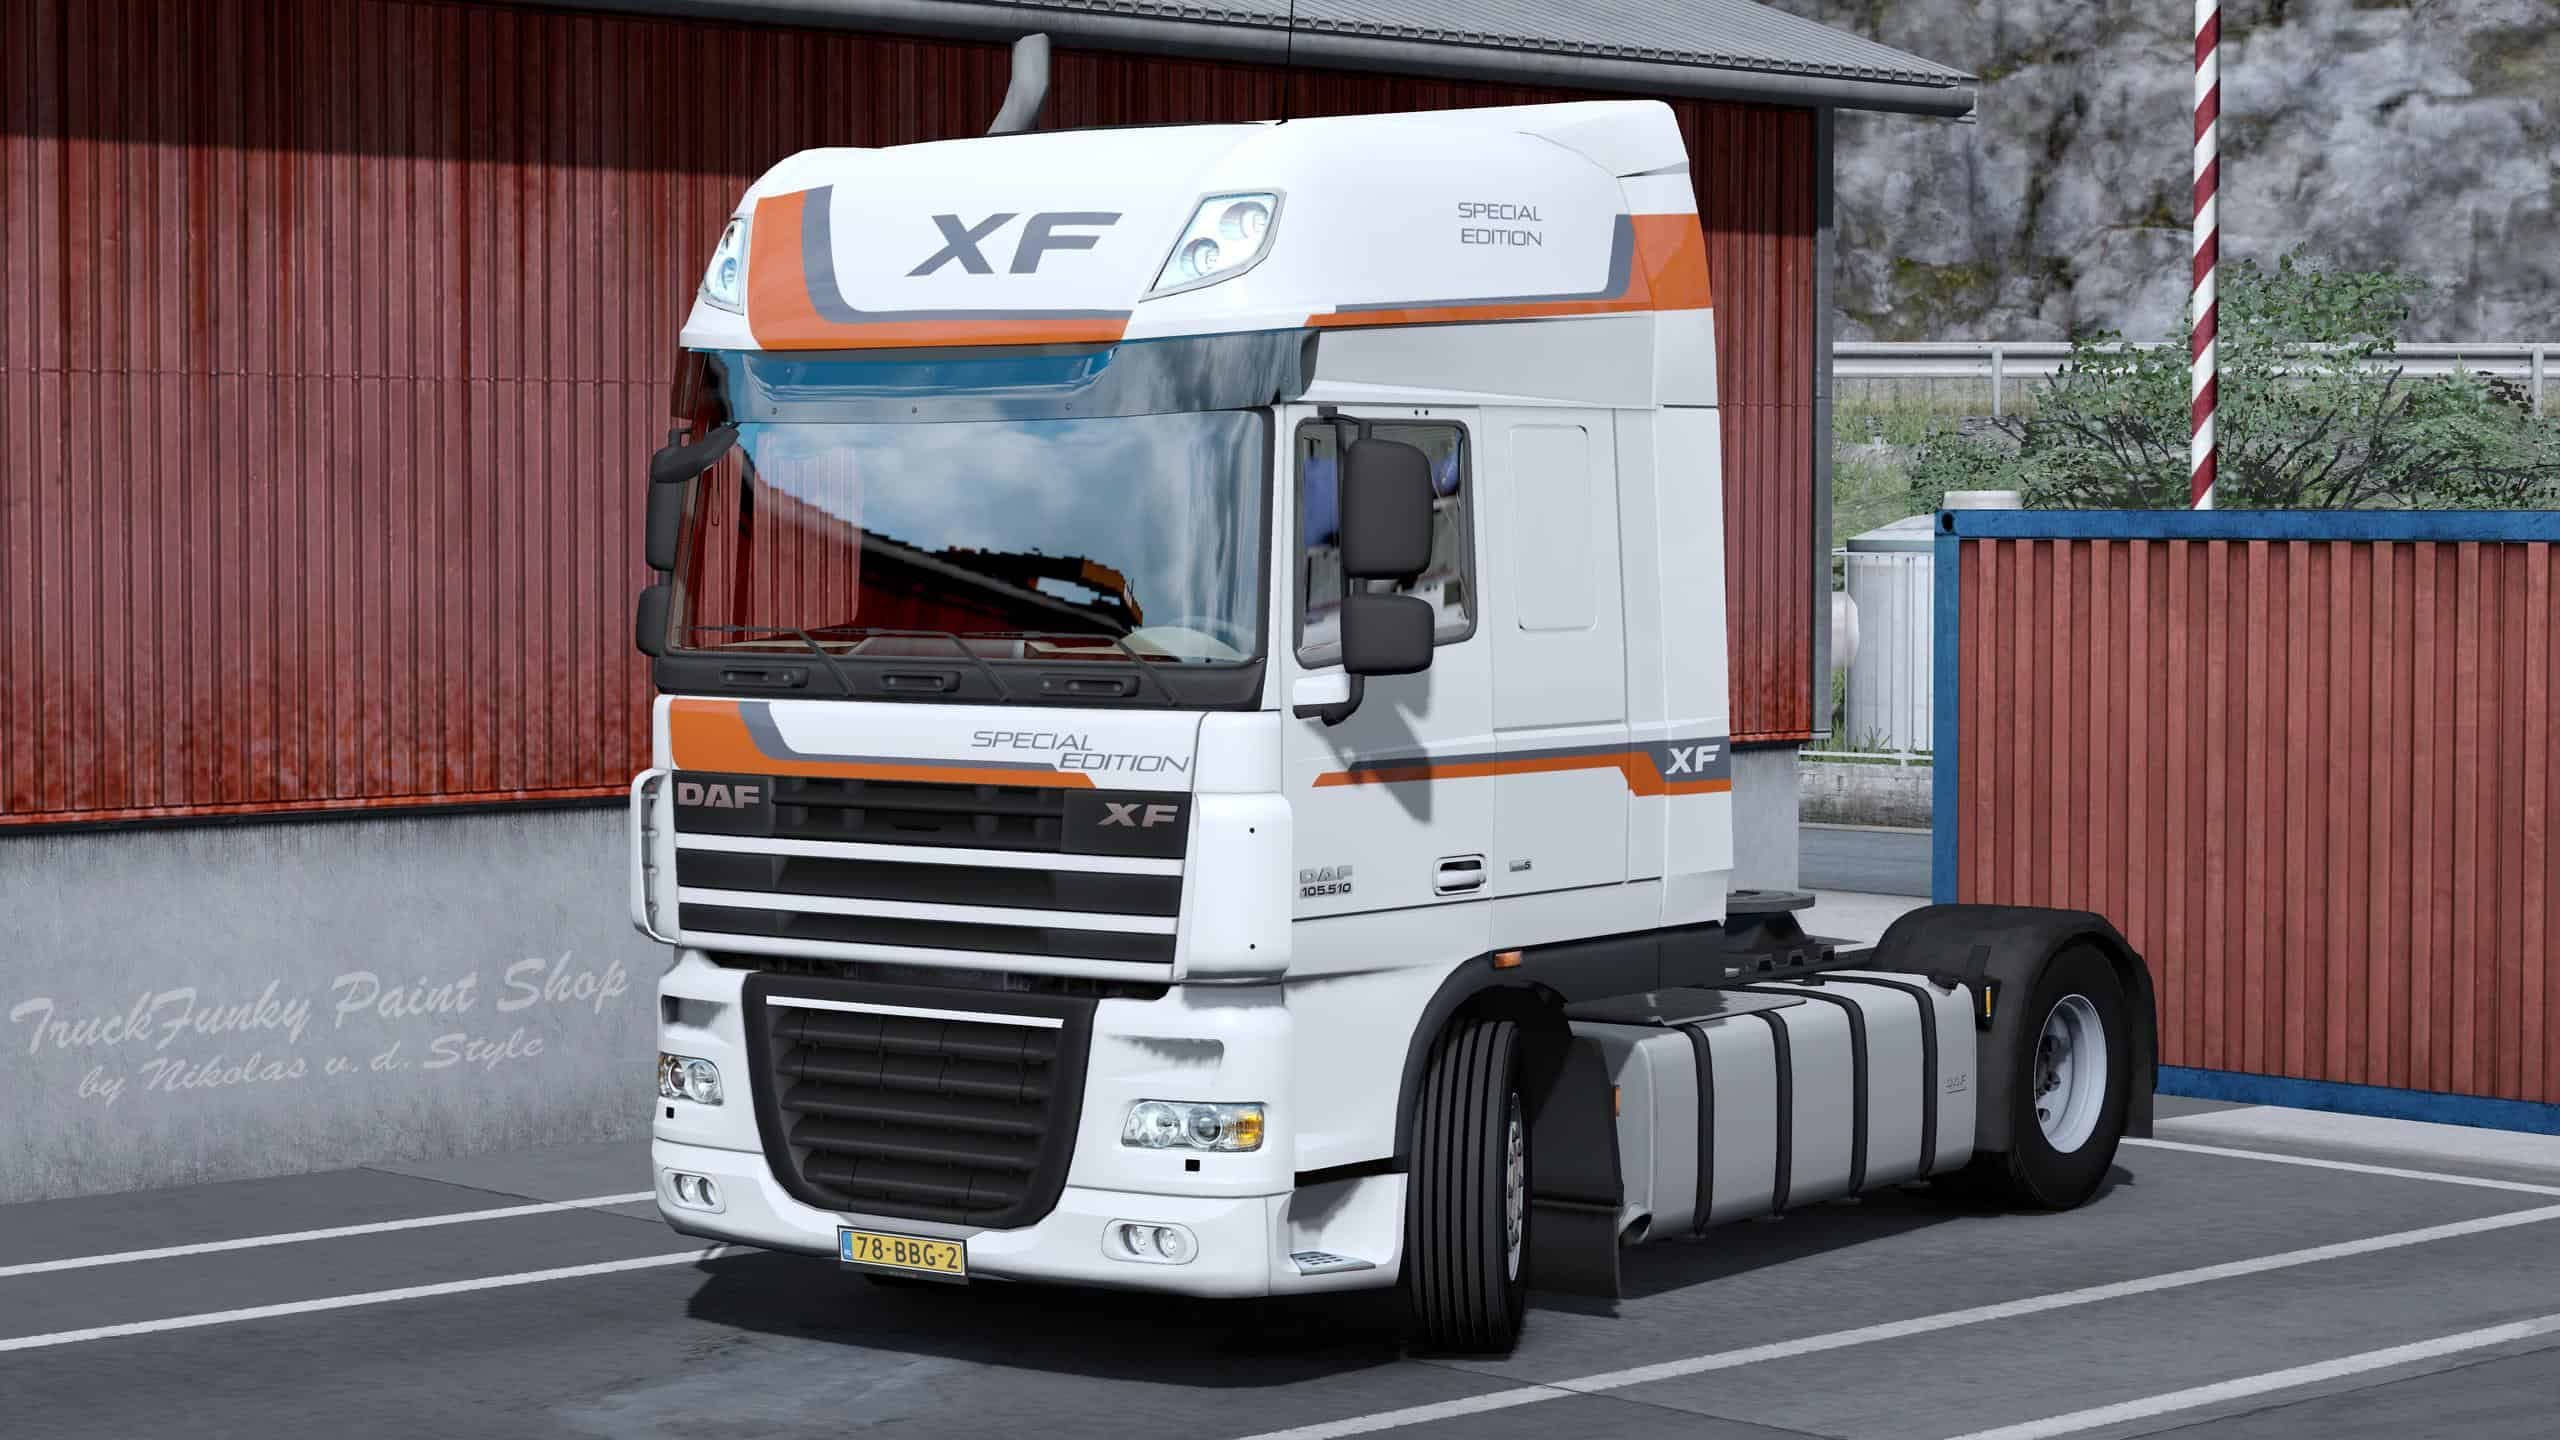 SKIN SPECIAL EDITION FOR DAF XF 105 BY VAD&K V1 0 TRUCK SKIN